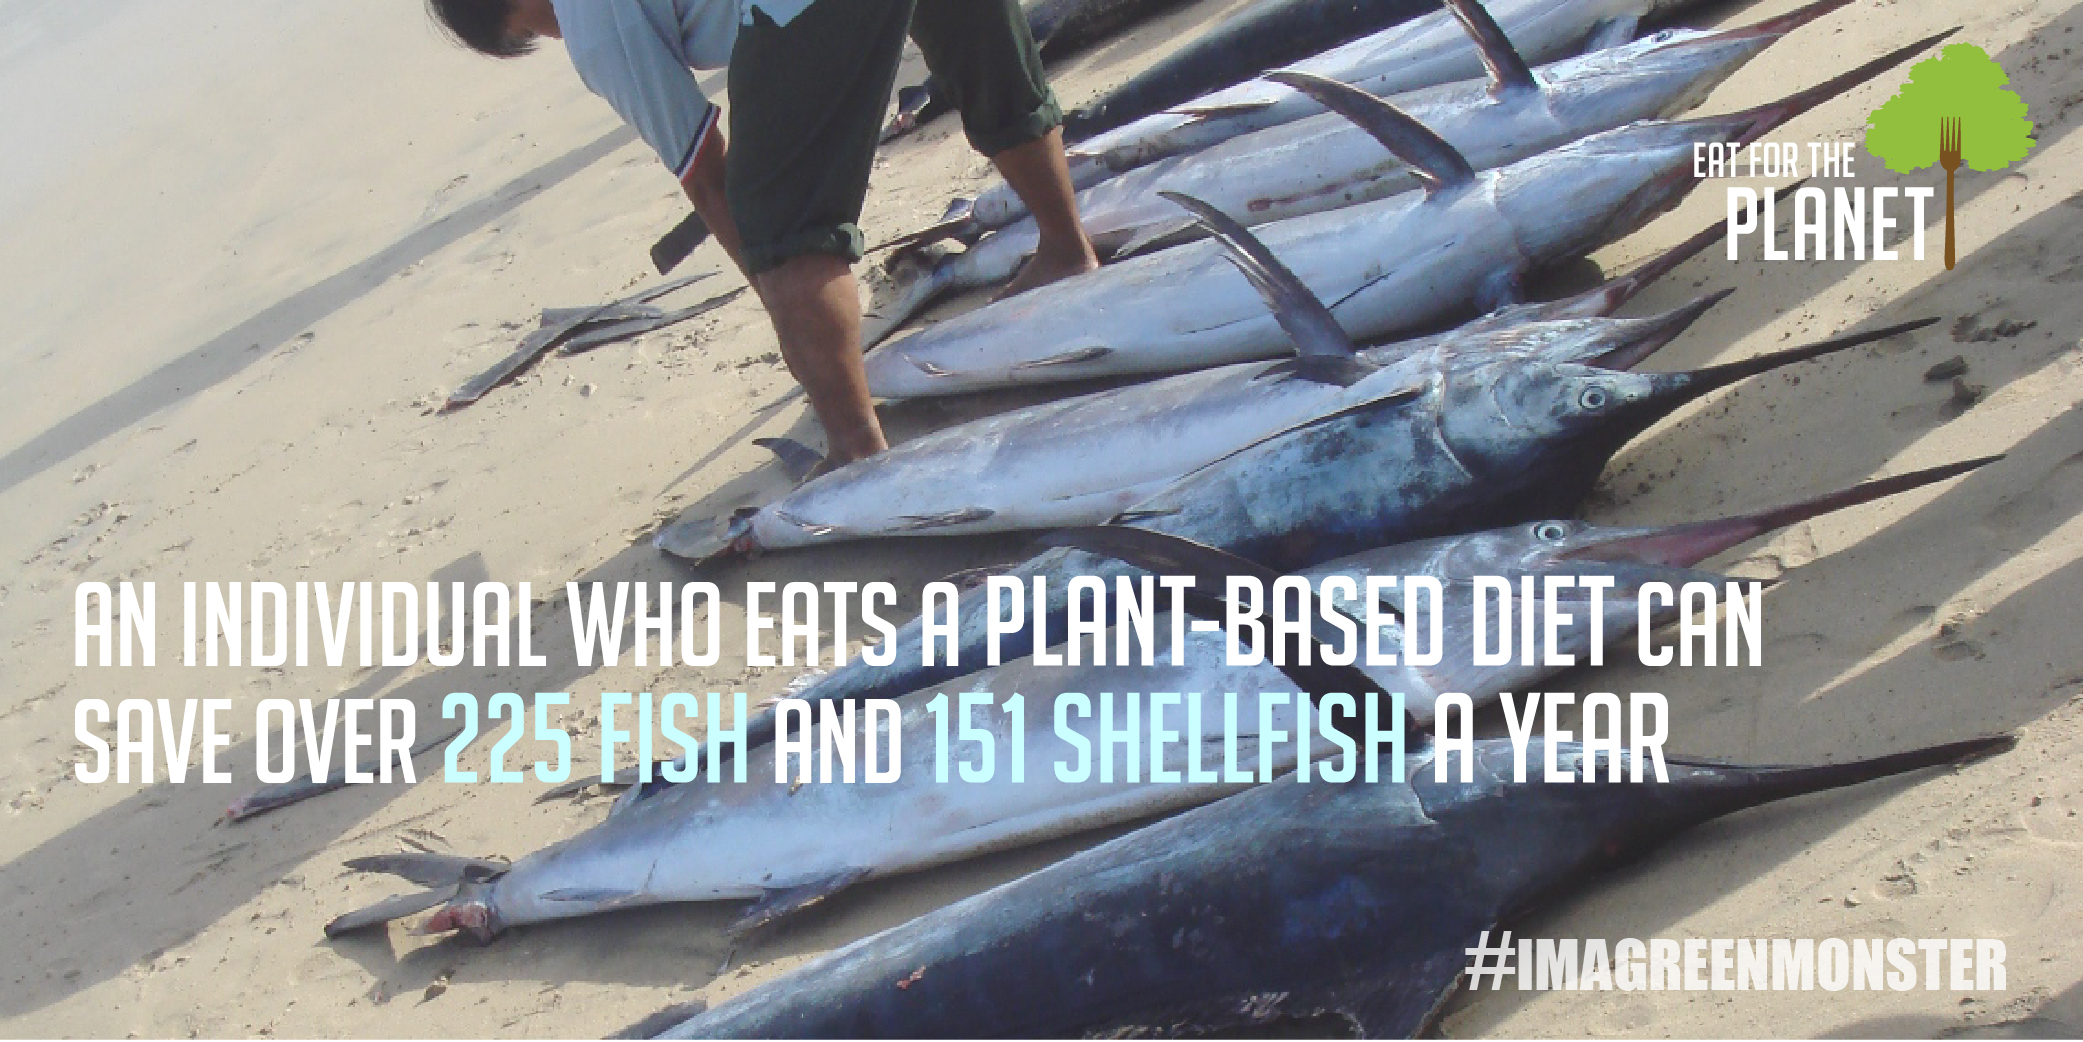 If You Took Seafood Out of Your Diet, How Would it Really Help the Planet?